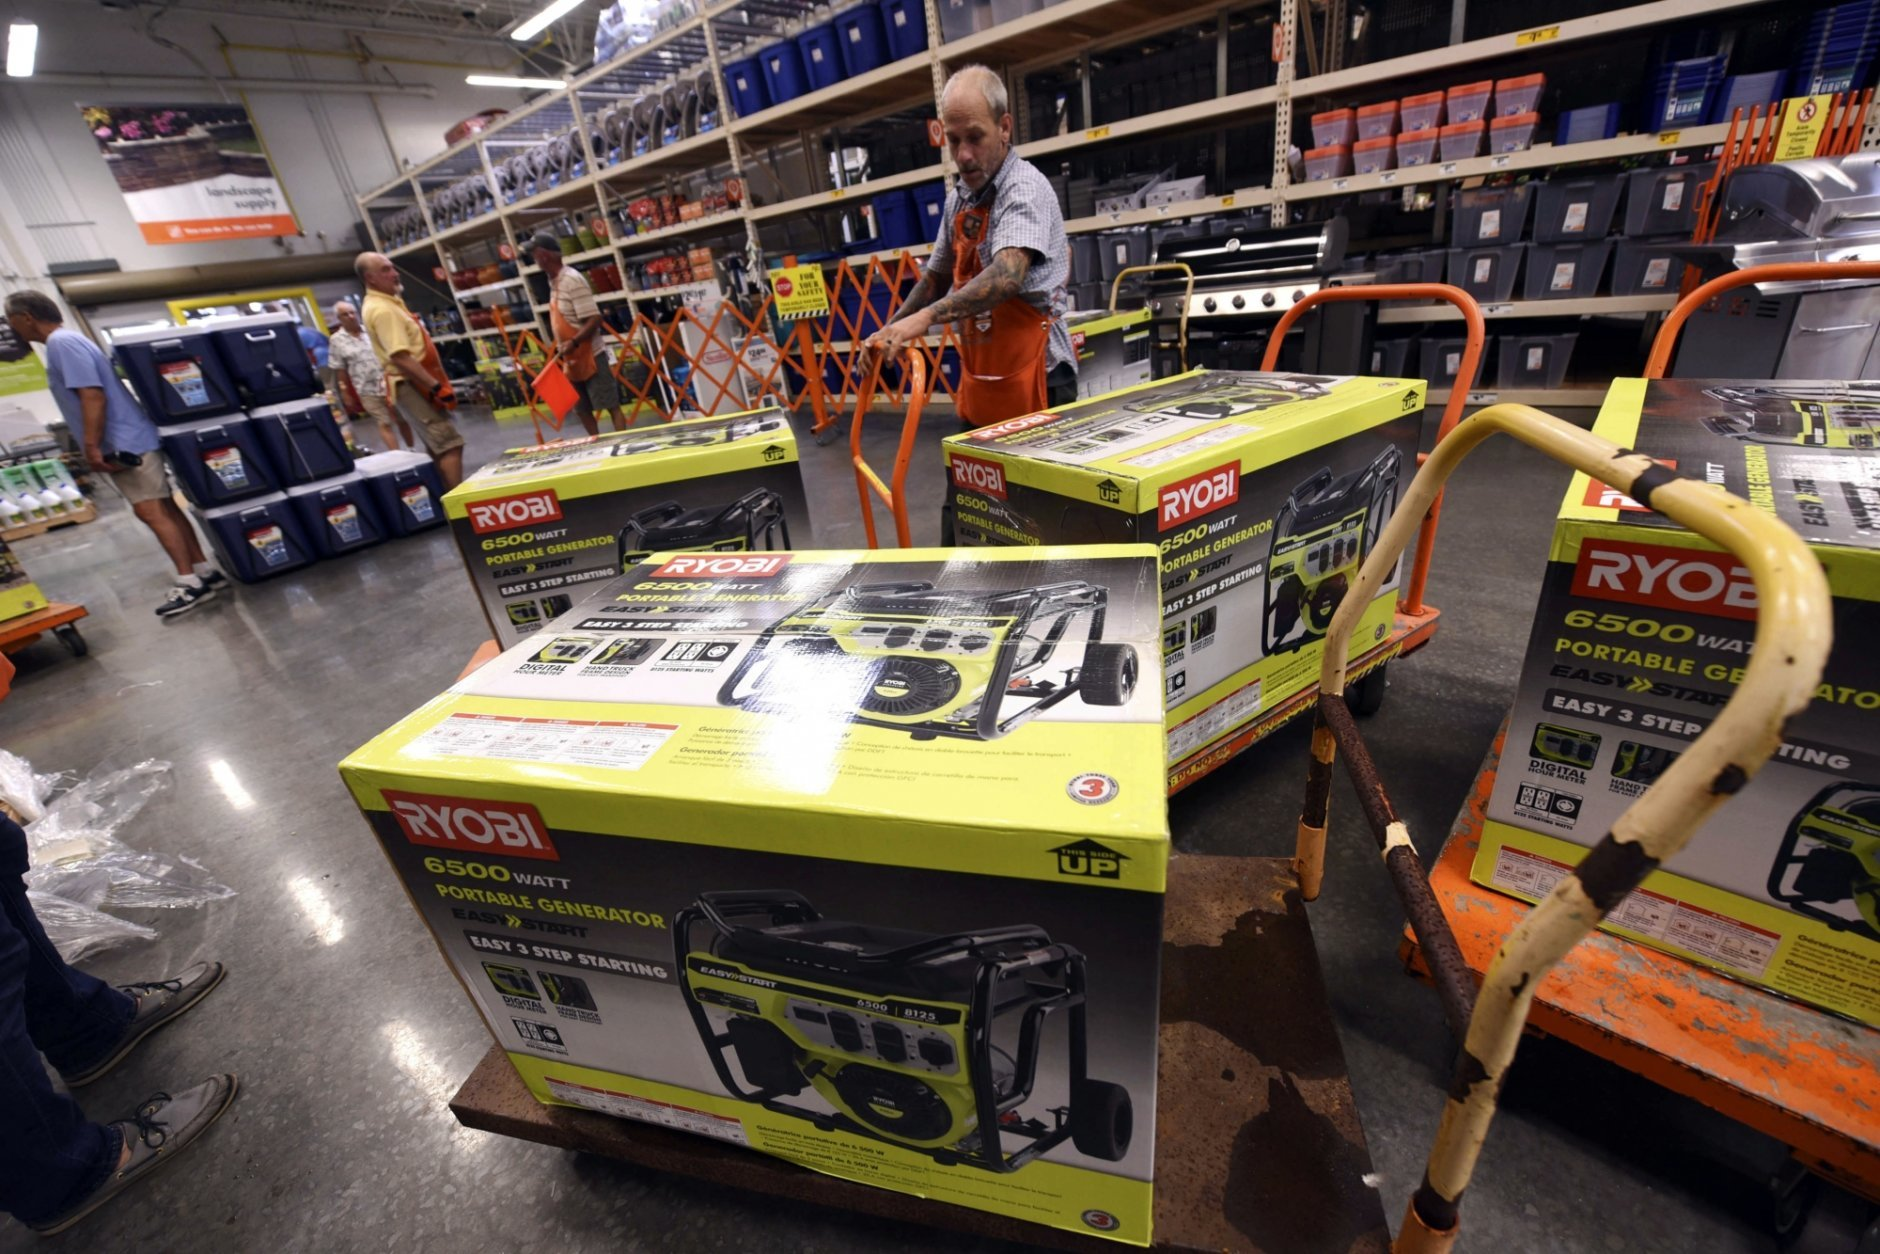 Brian Franklin prepares more generators for sale as people buy supplies at The Home Depot on Monday, Sept. 10, 2018, in Wilmington, N.C. Hurricane Florence rapidly strengthened into a potentially catastrophic hurricane on Monday as it closed in on North and South Carolina, carrying winds and water that could wreak havoc over a wide stretch of the eastern United States later this week. (Ken Blevins/The Star-News via AP)